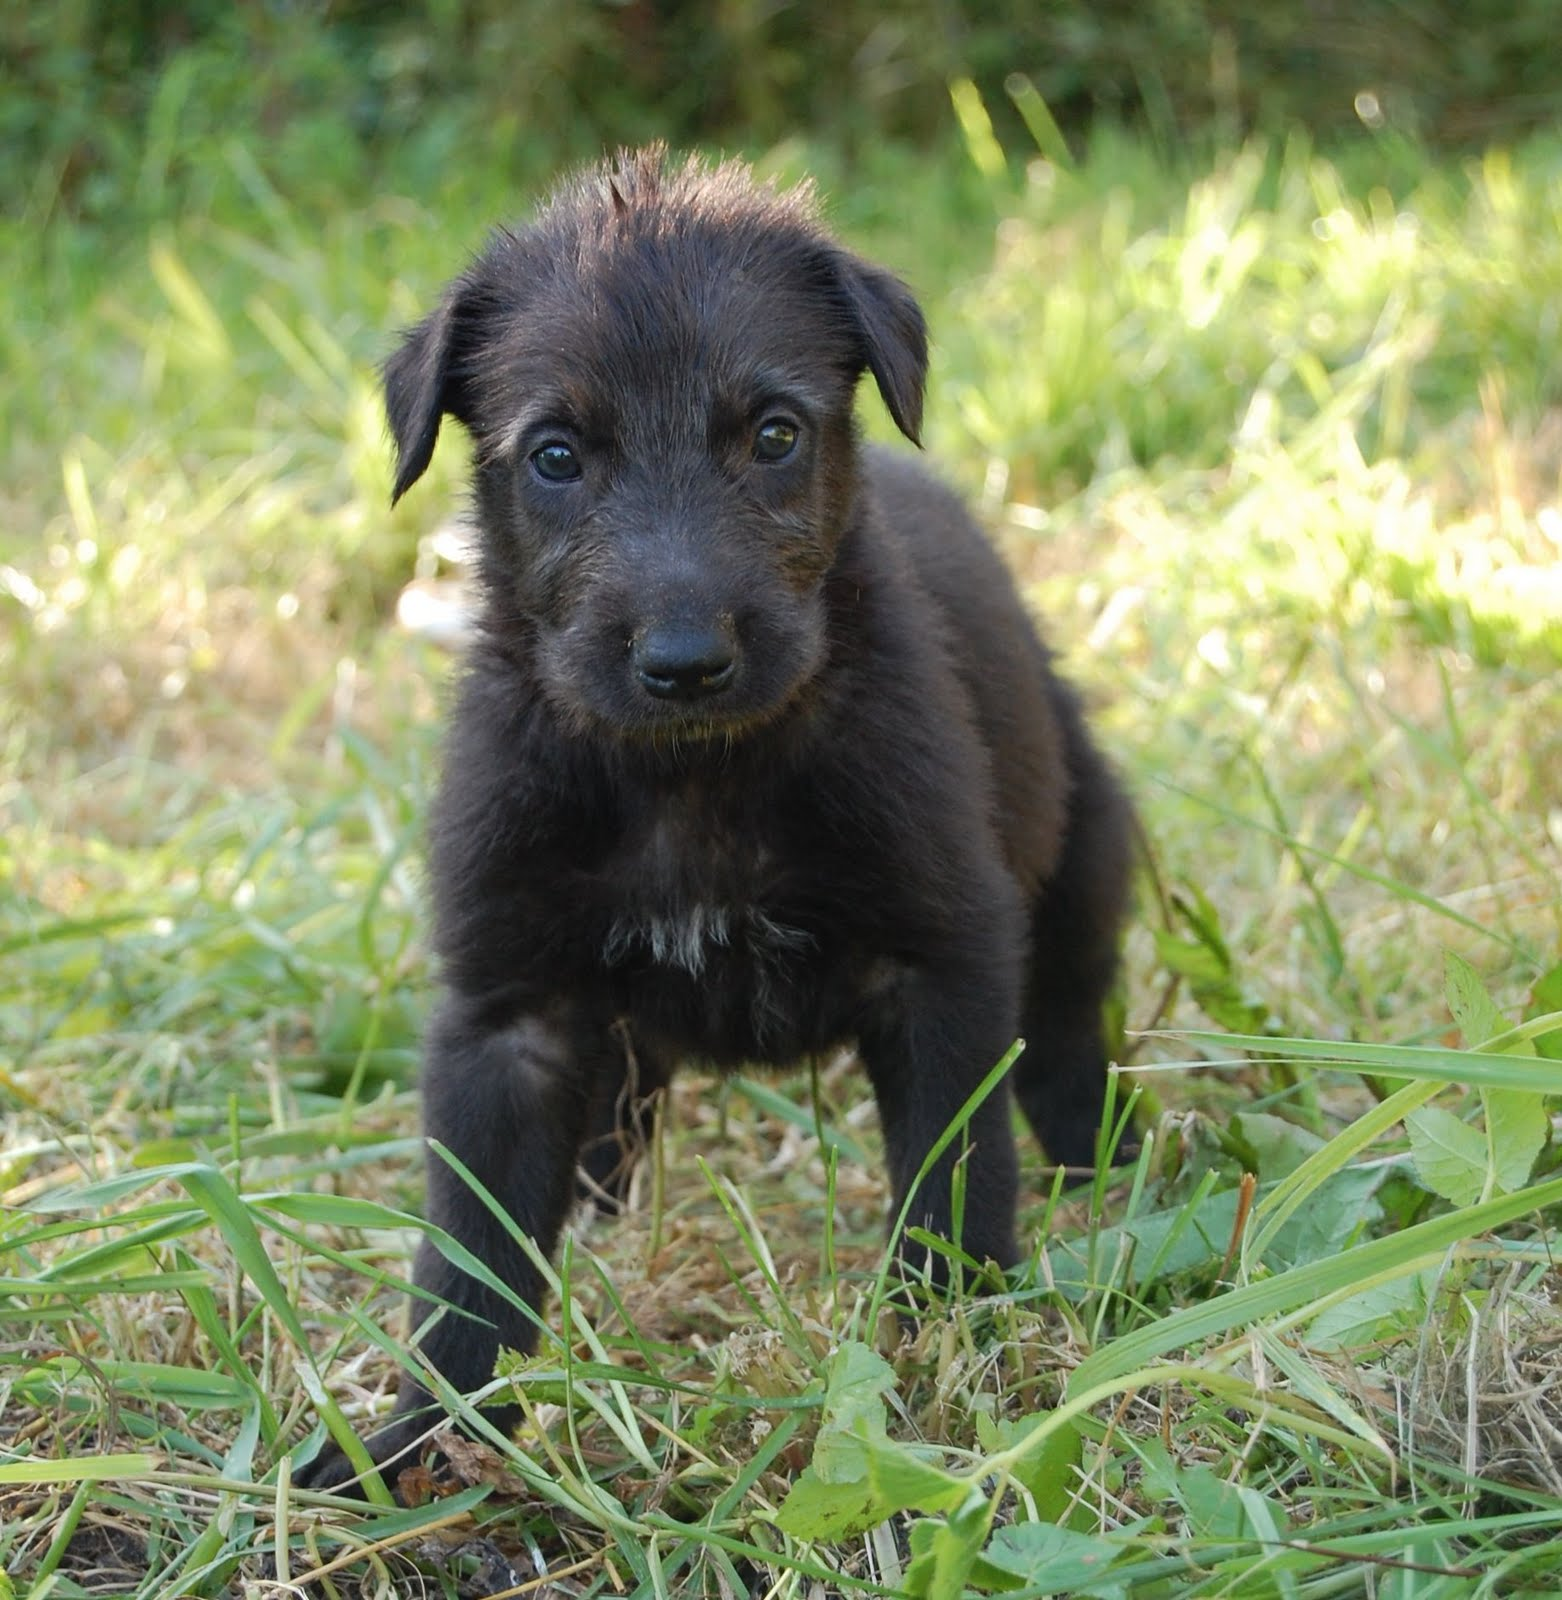 Sinhala Hound Puppies: Sinhala Scottish Deerhound Puppy Breed